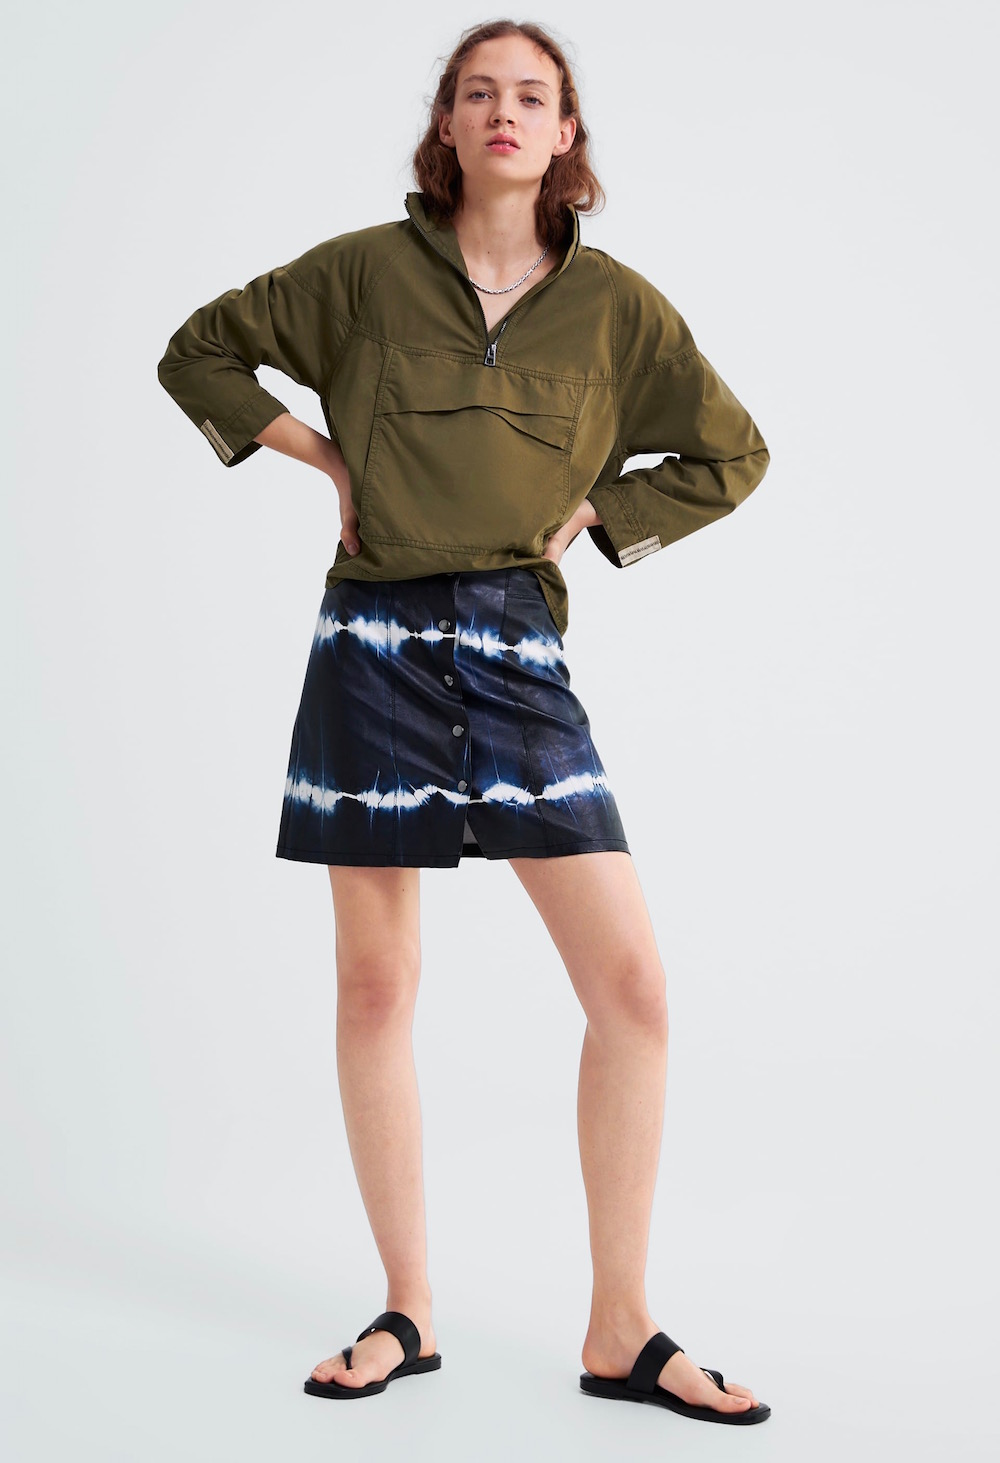 79bec313dda 22 Spring Pieces You Can Wear Now and Later - theFashionSpot